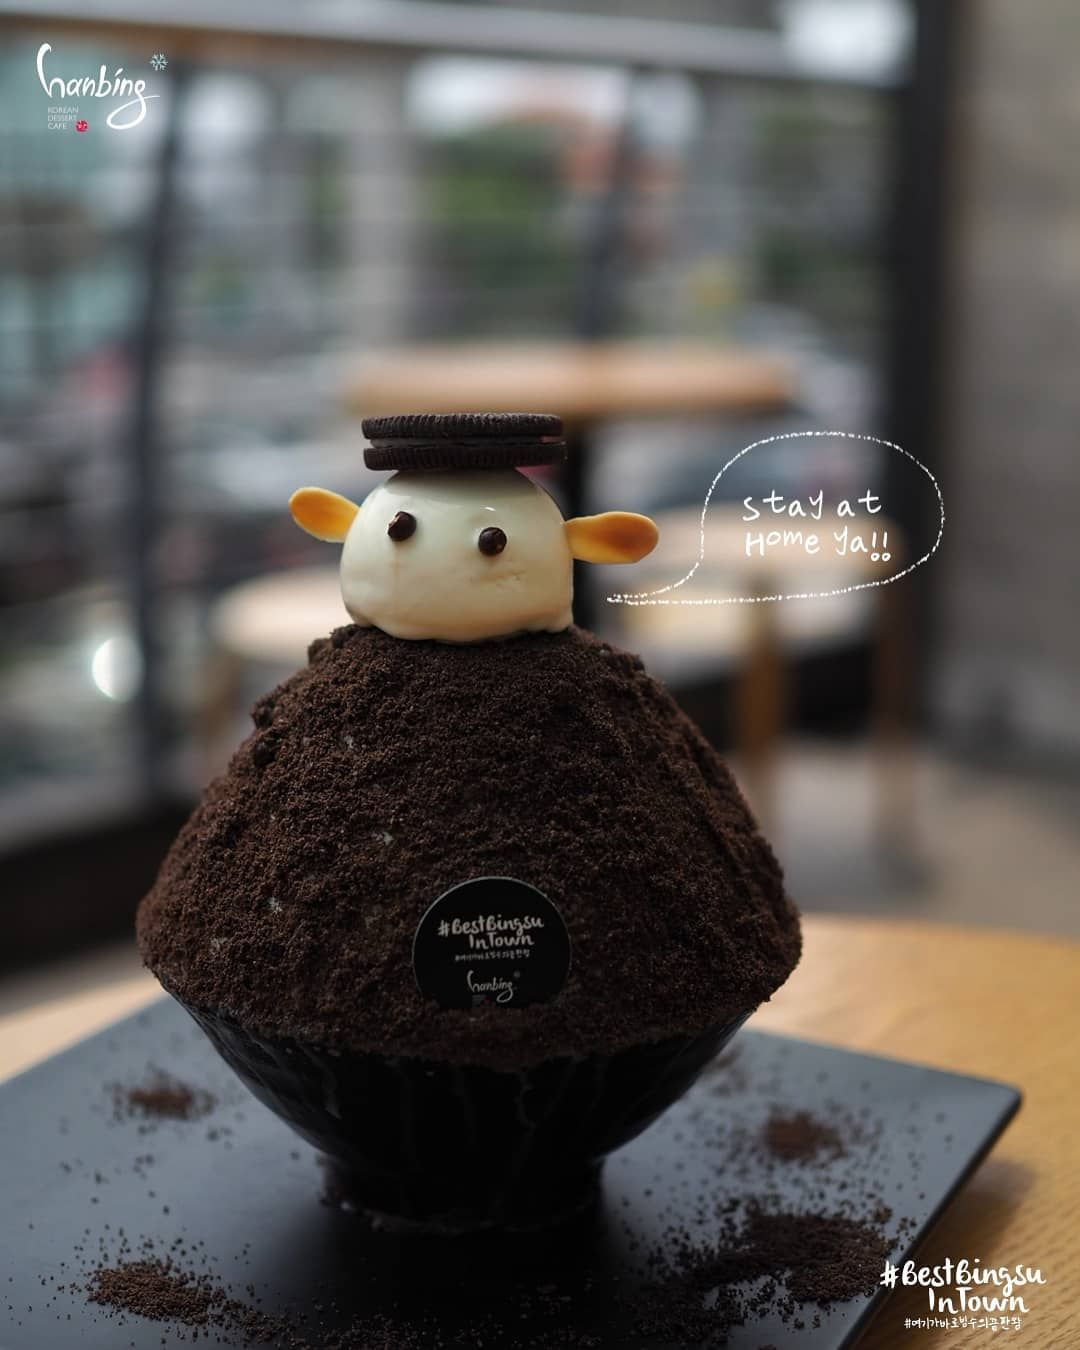 Hanbing Korean Dessert Cafe On Instagram We Hope You Re All Well And Safe Our Oreo Snow Will Be Here For You S In 2020 Korean Dessert Cafe Korean Dessert Desserts